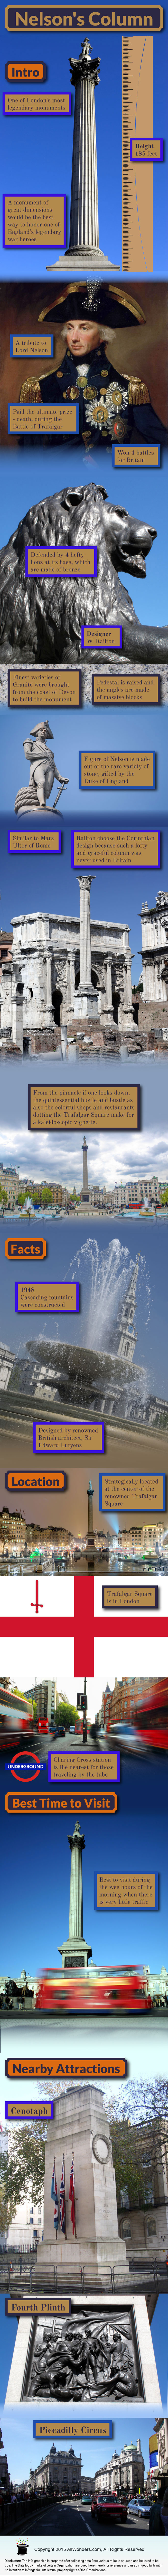 Nelson's Column - Facts & Infographic